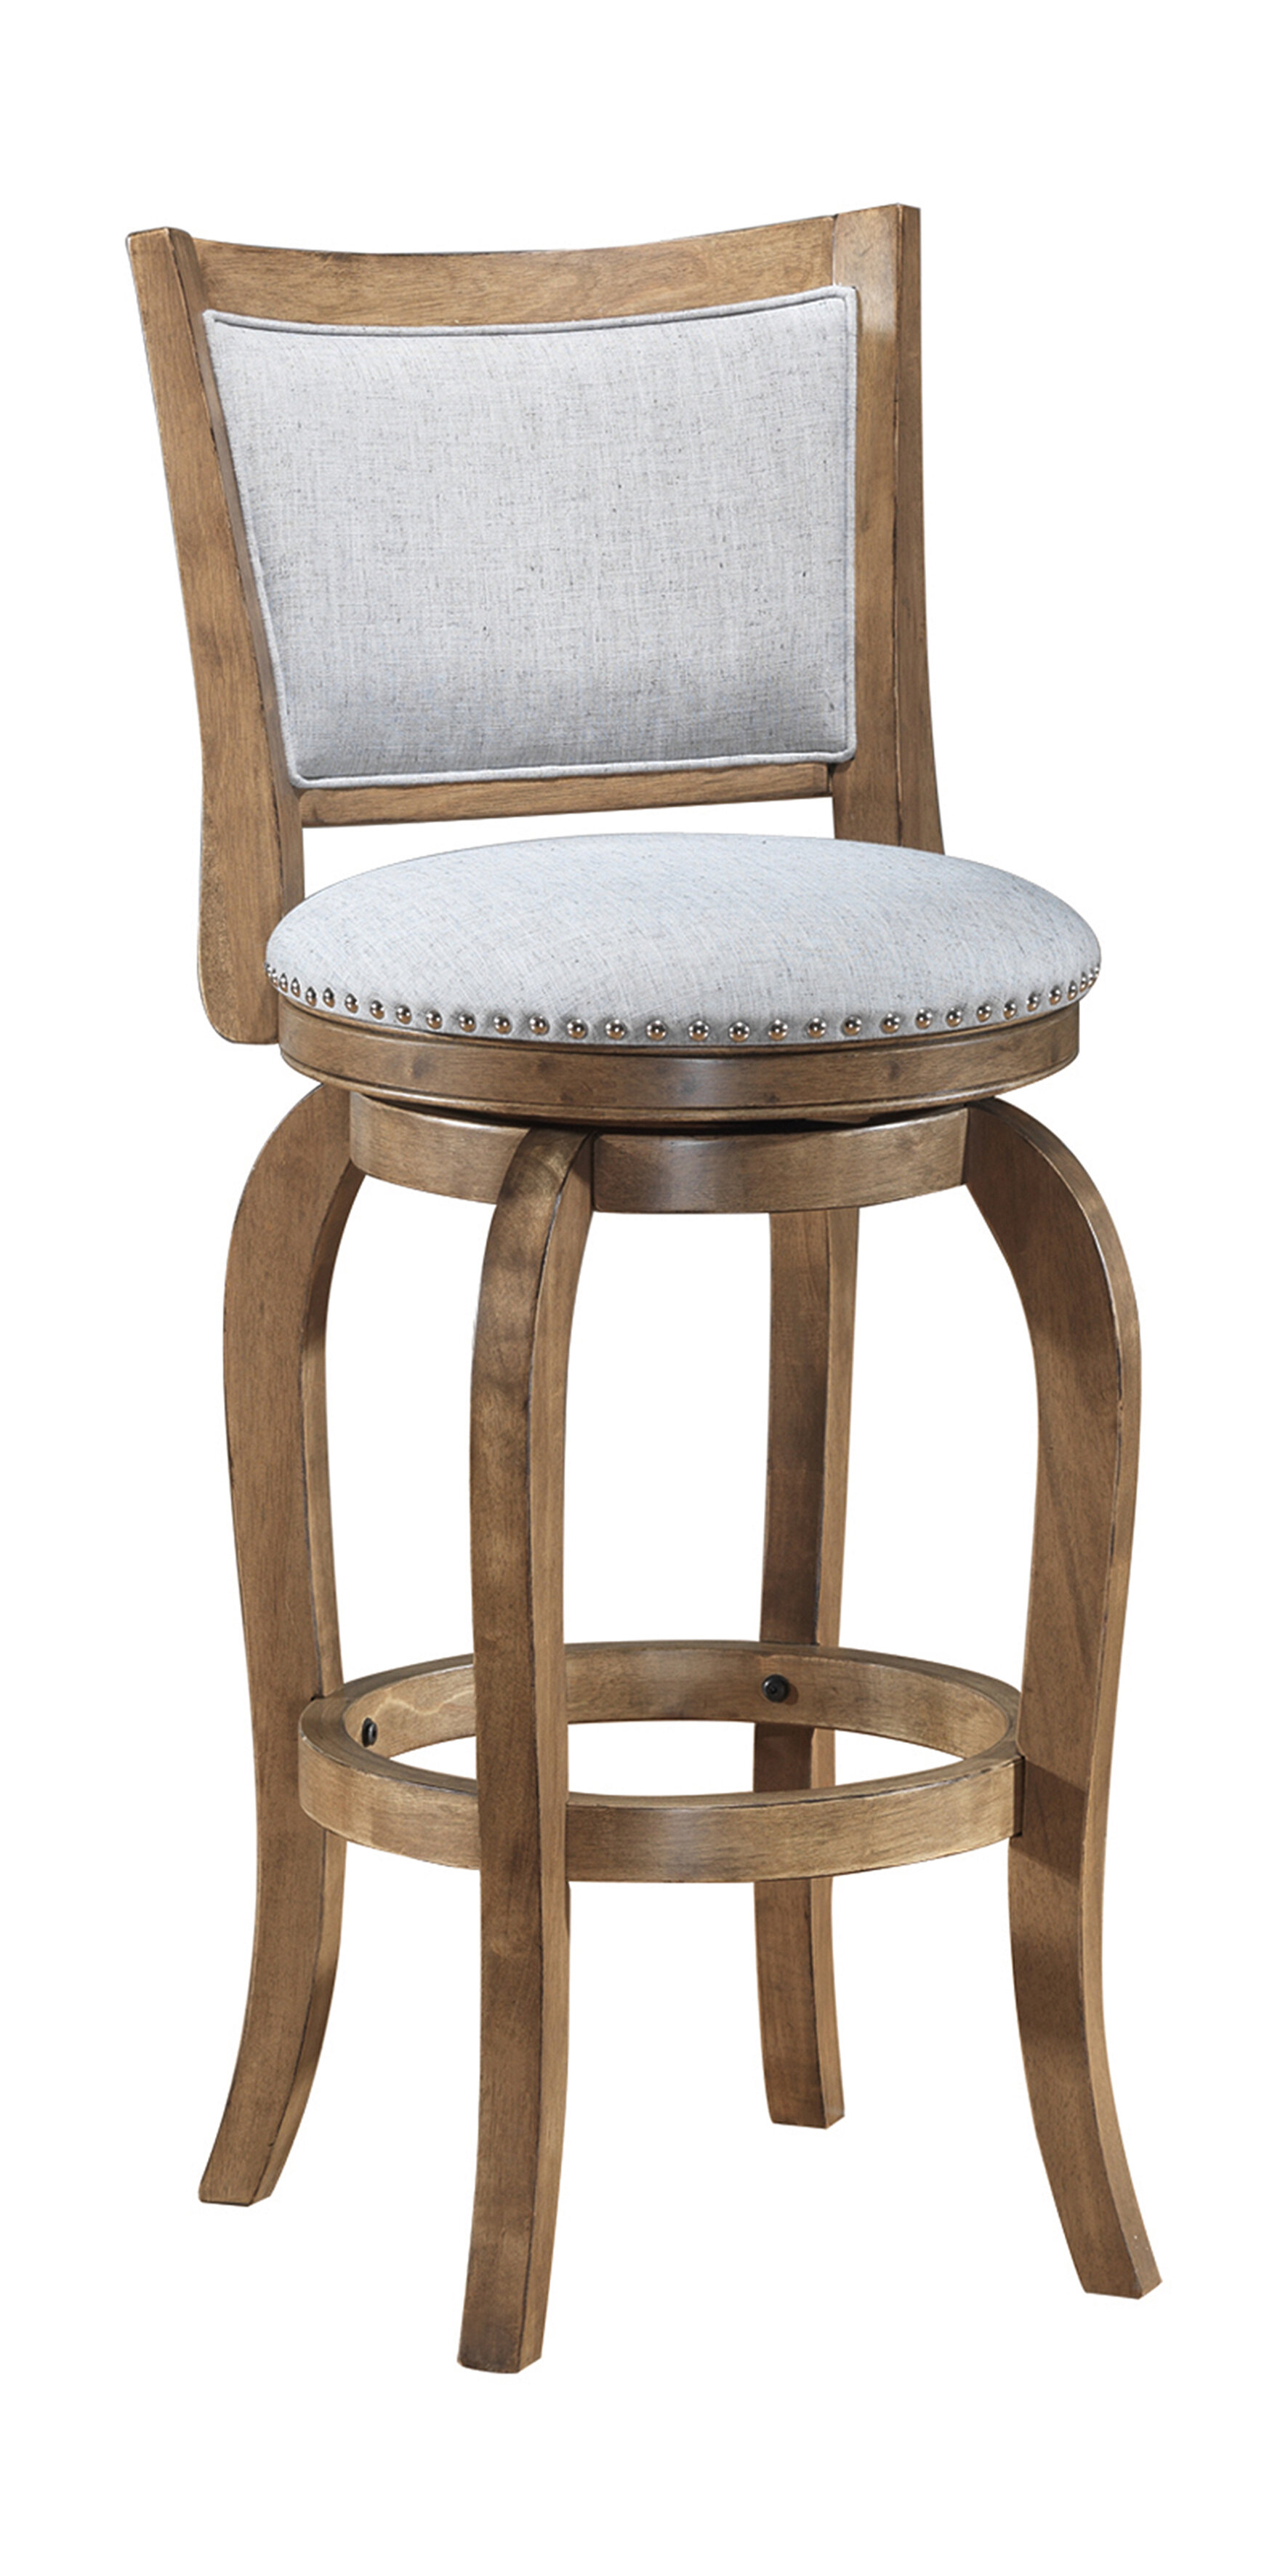 Prevost Wooden Swivel Bar Stool